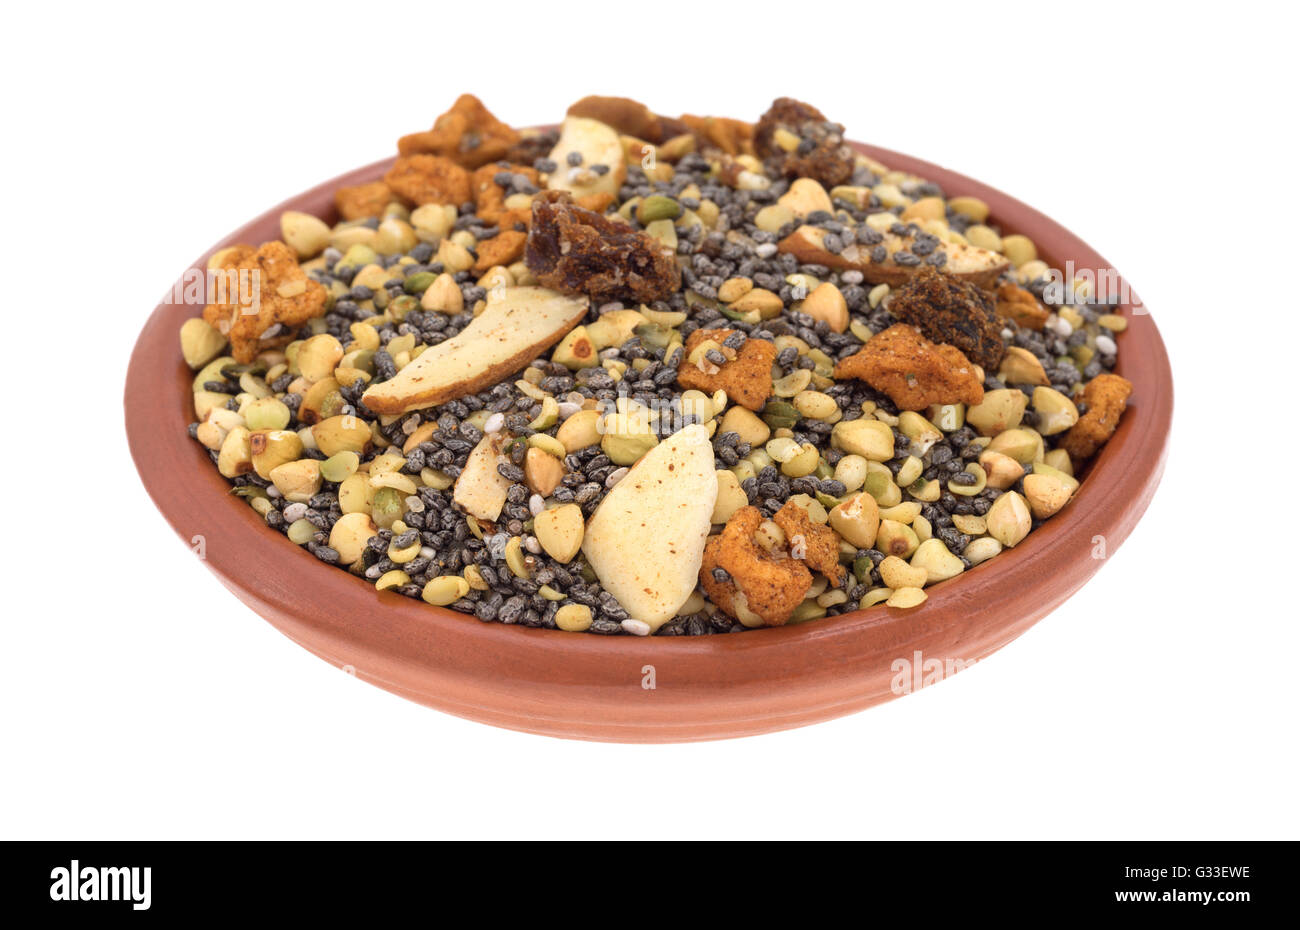 A small bowl filled with dry breakfast cereal consisting of chia seeds, nuts, and dried fruit isolated on a white - Stock Image